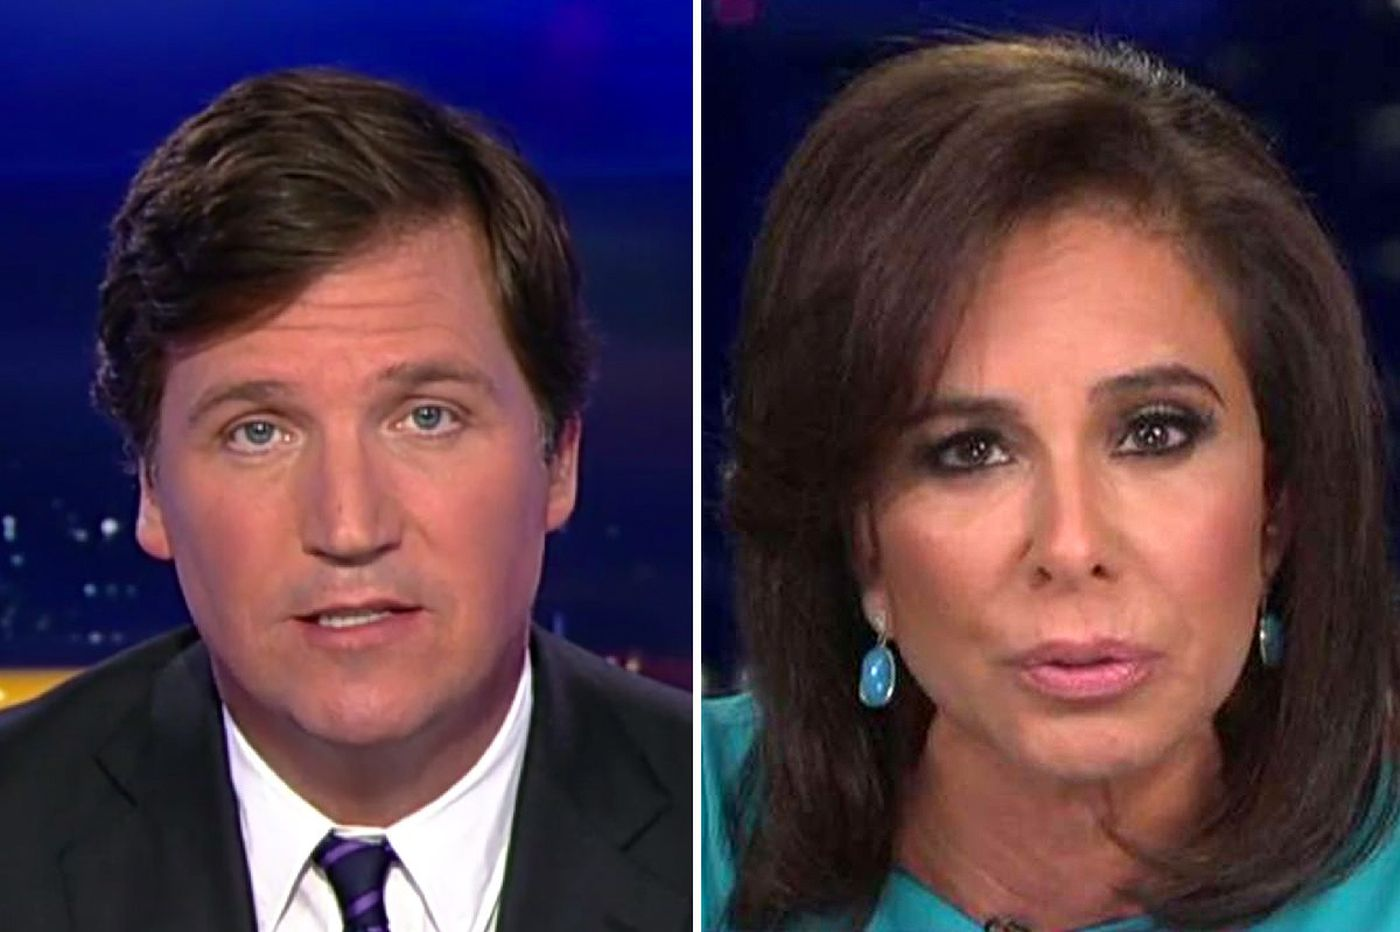 Fox News condemns host Jeanine Pirro, remains silent on Tucker Carlson